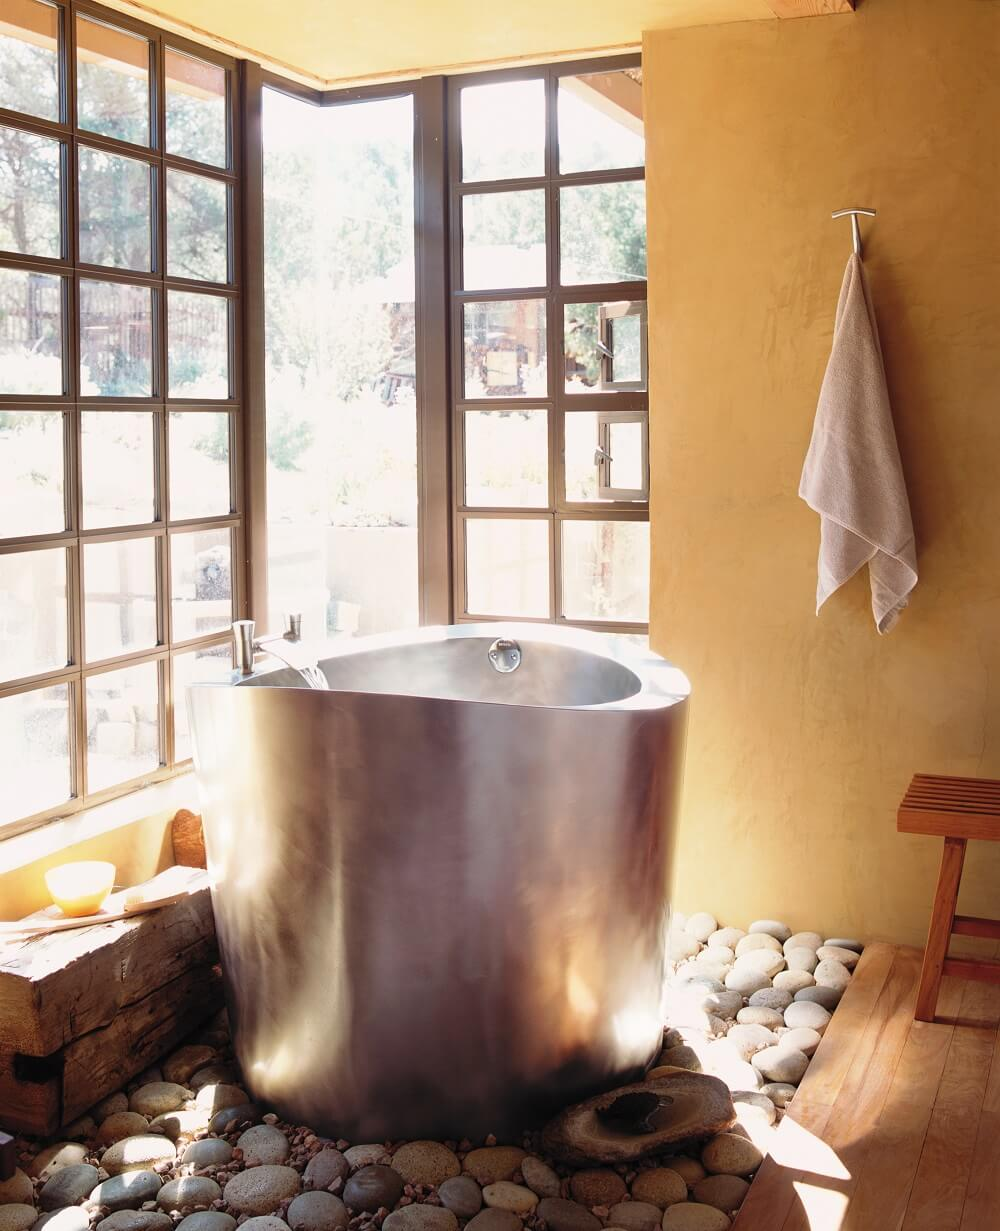 Fullsize Of Deep Soaking Tub